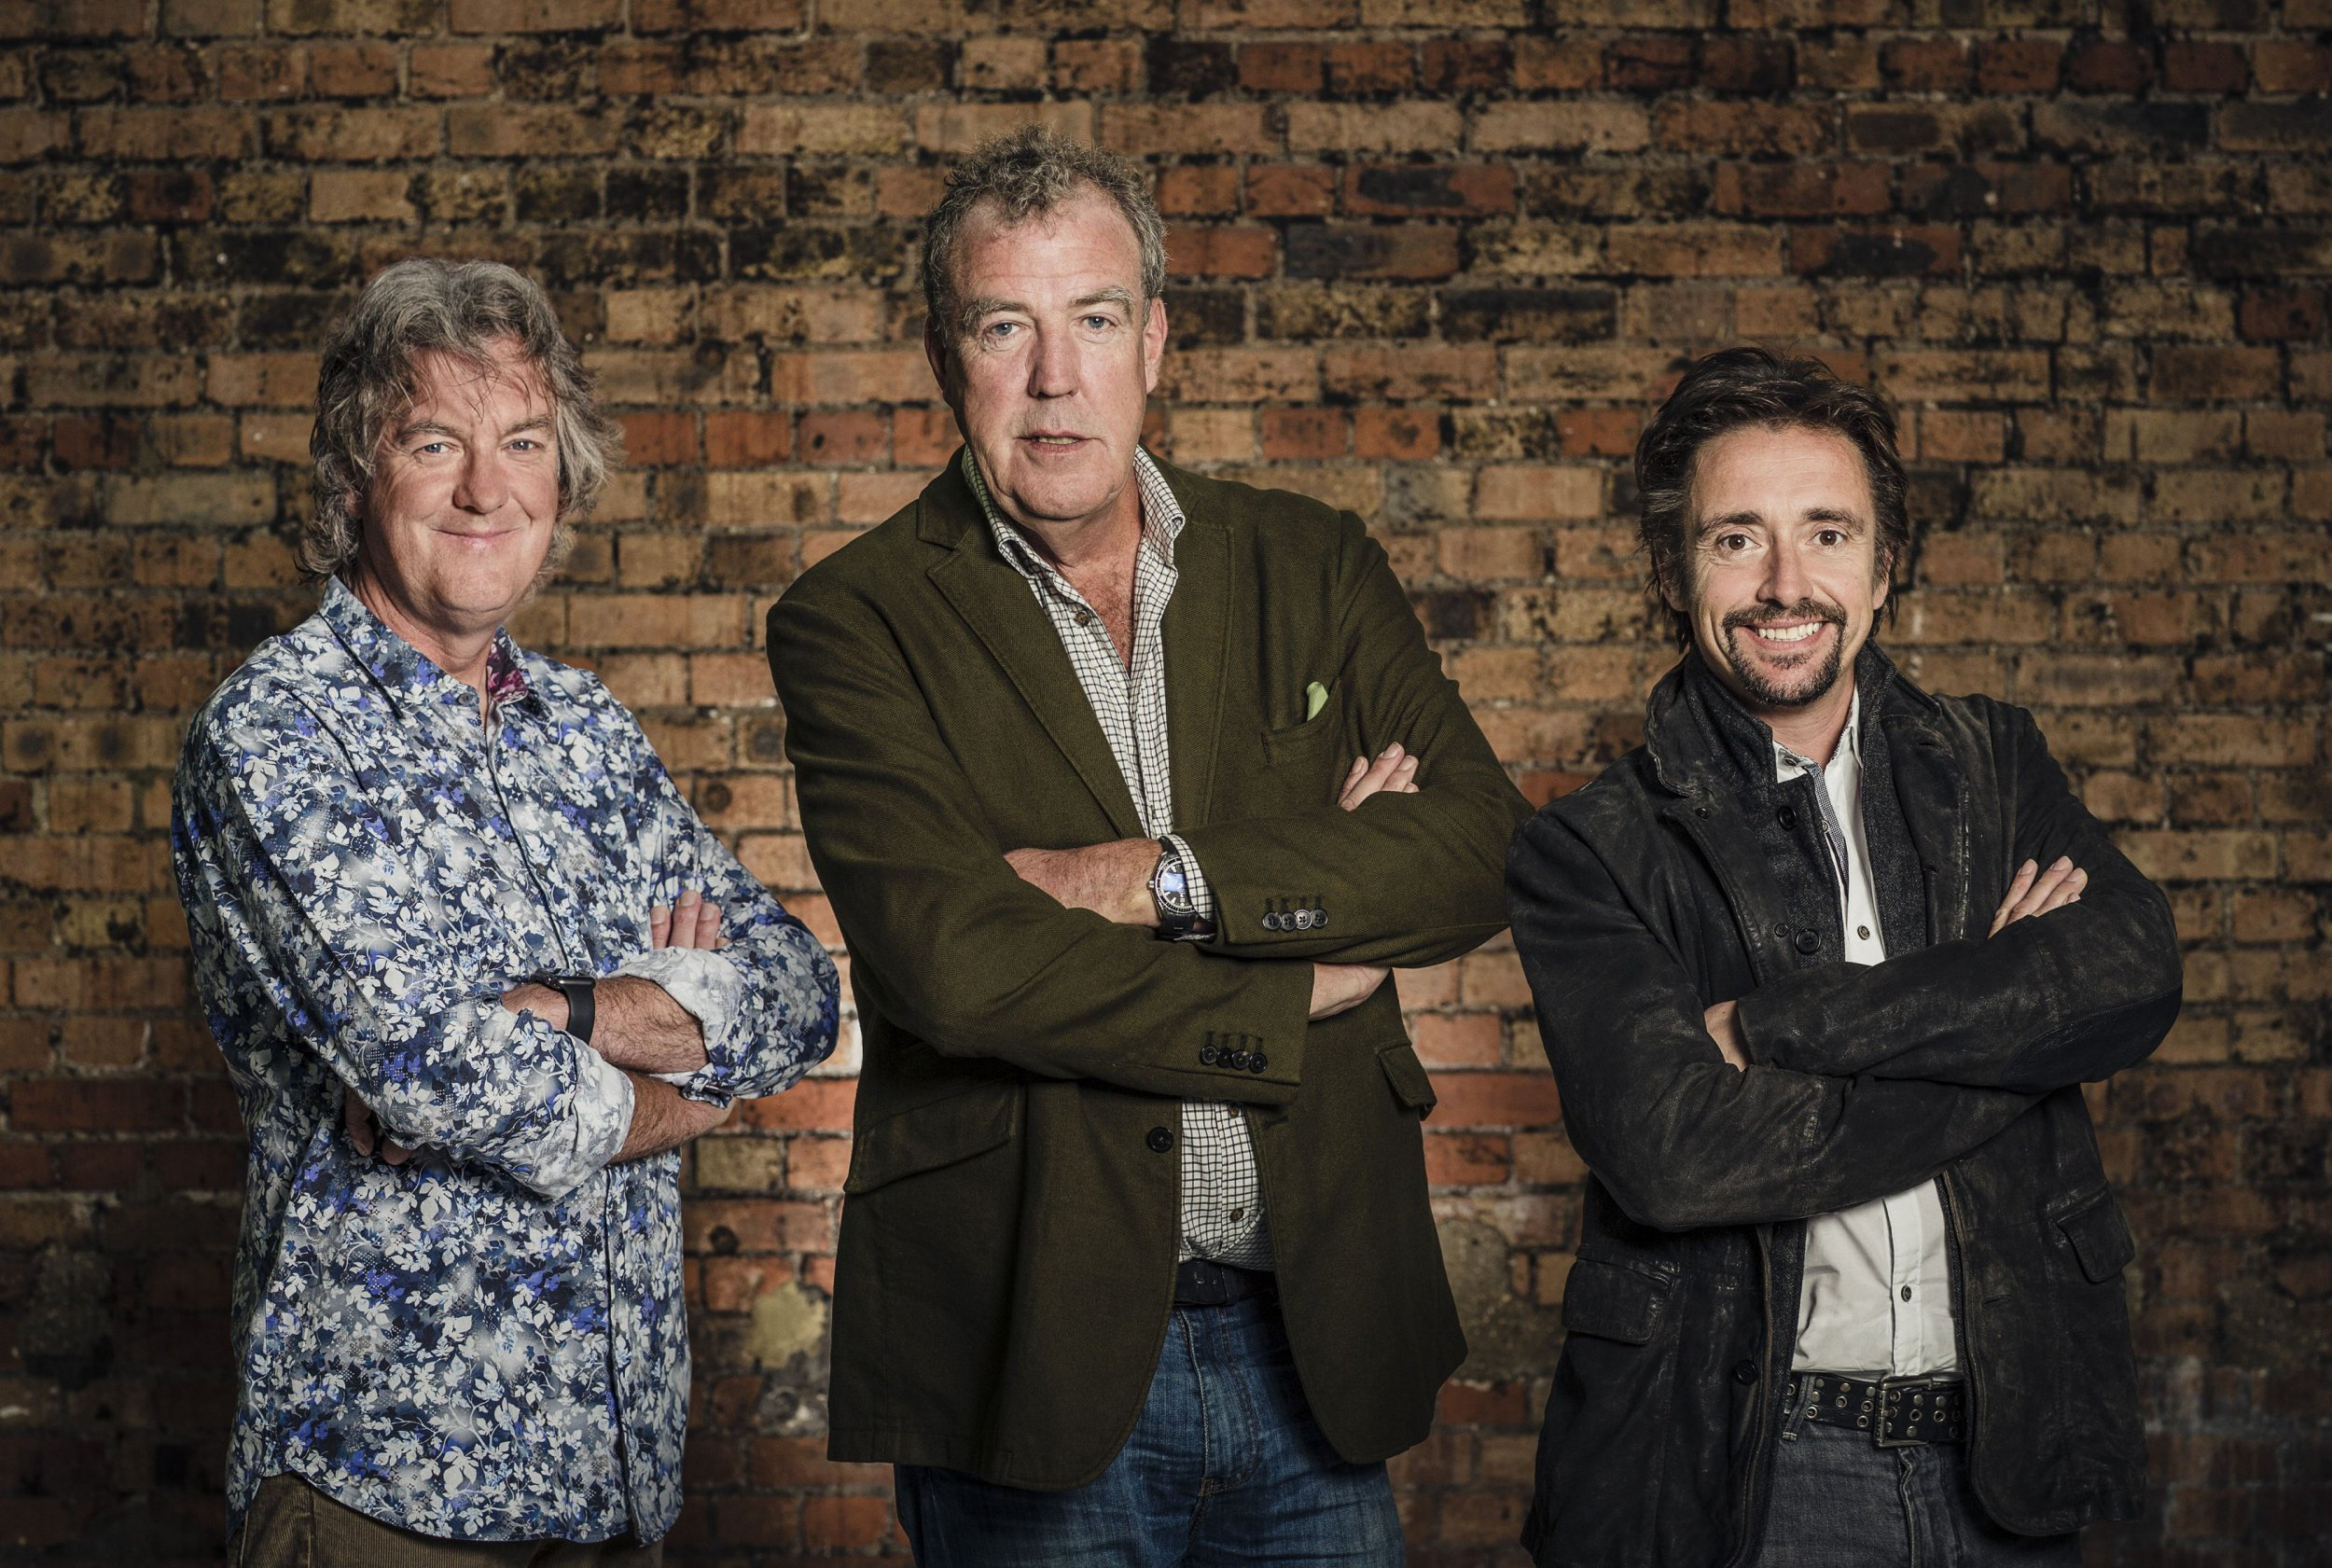 (L - R) Presenters James May, Jeremy Clarkson and Richard Hammond strike a pose during filming of The Grand Tour. Undated handout file photo issued by Amazon of (left to right) James May, Jeremy Clarkson and Richard Hammond during filming of The Grand Tour, as the debut episode of the show set a new streaming record for Amazon Prime Video, the company has said. PRESS ASSOCIATION Photo. Issue date: Tuesday November 22, 2016. The Former Top Gear stars Clarkson, Hammond and May's new effort has become the subscription service's biggest premiere, beating previous number one show on the service, 2015's The Man In The High Castle. See PA story SHOWBIZ GrandTour. Photo credit should read: Amazon Prime Video/PA Wire NOTE TO EDITORS: This handout photo may only be used in for editorial reporting purposes for the contemporaneous illustration of events, things or the people in the image or facts mentioned in the caption. Reuse of the picture may require further permission from the copyright holder.